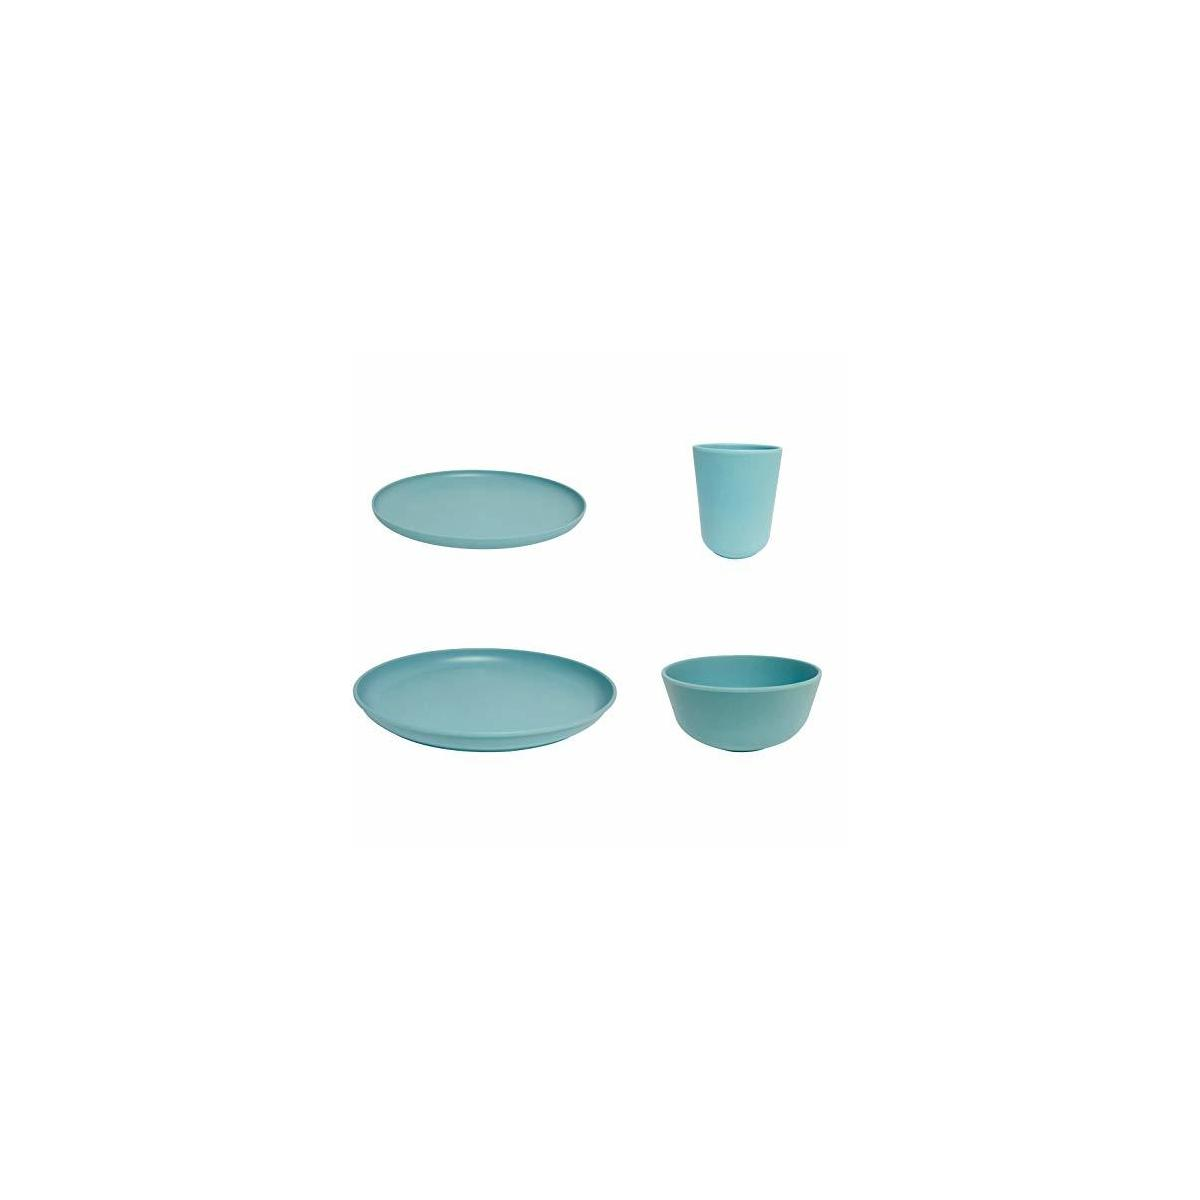 Set for1person (4PCS)/BAMBOO fiber dinnerware set for Adults&Kids dishwasher safe,reusable dinnerware,picnic tableware,Cup,Plate,Plate,Salad Plate,Soup Bowl,Cup,wedding gift,Picnic Party,BBQ set(Blue)